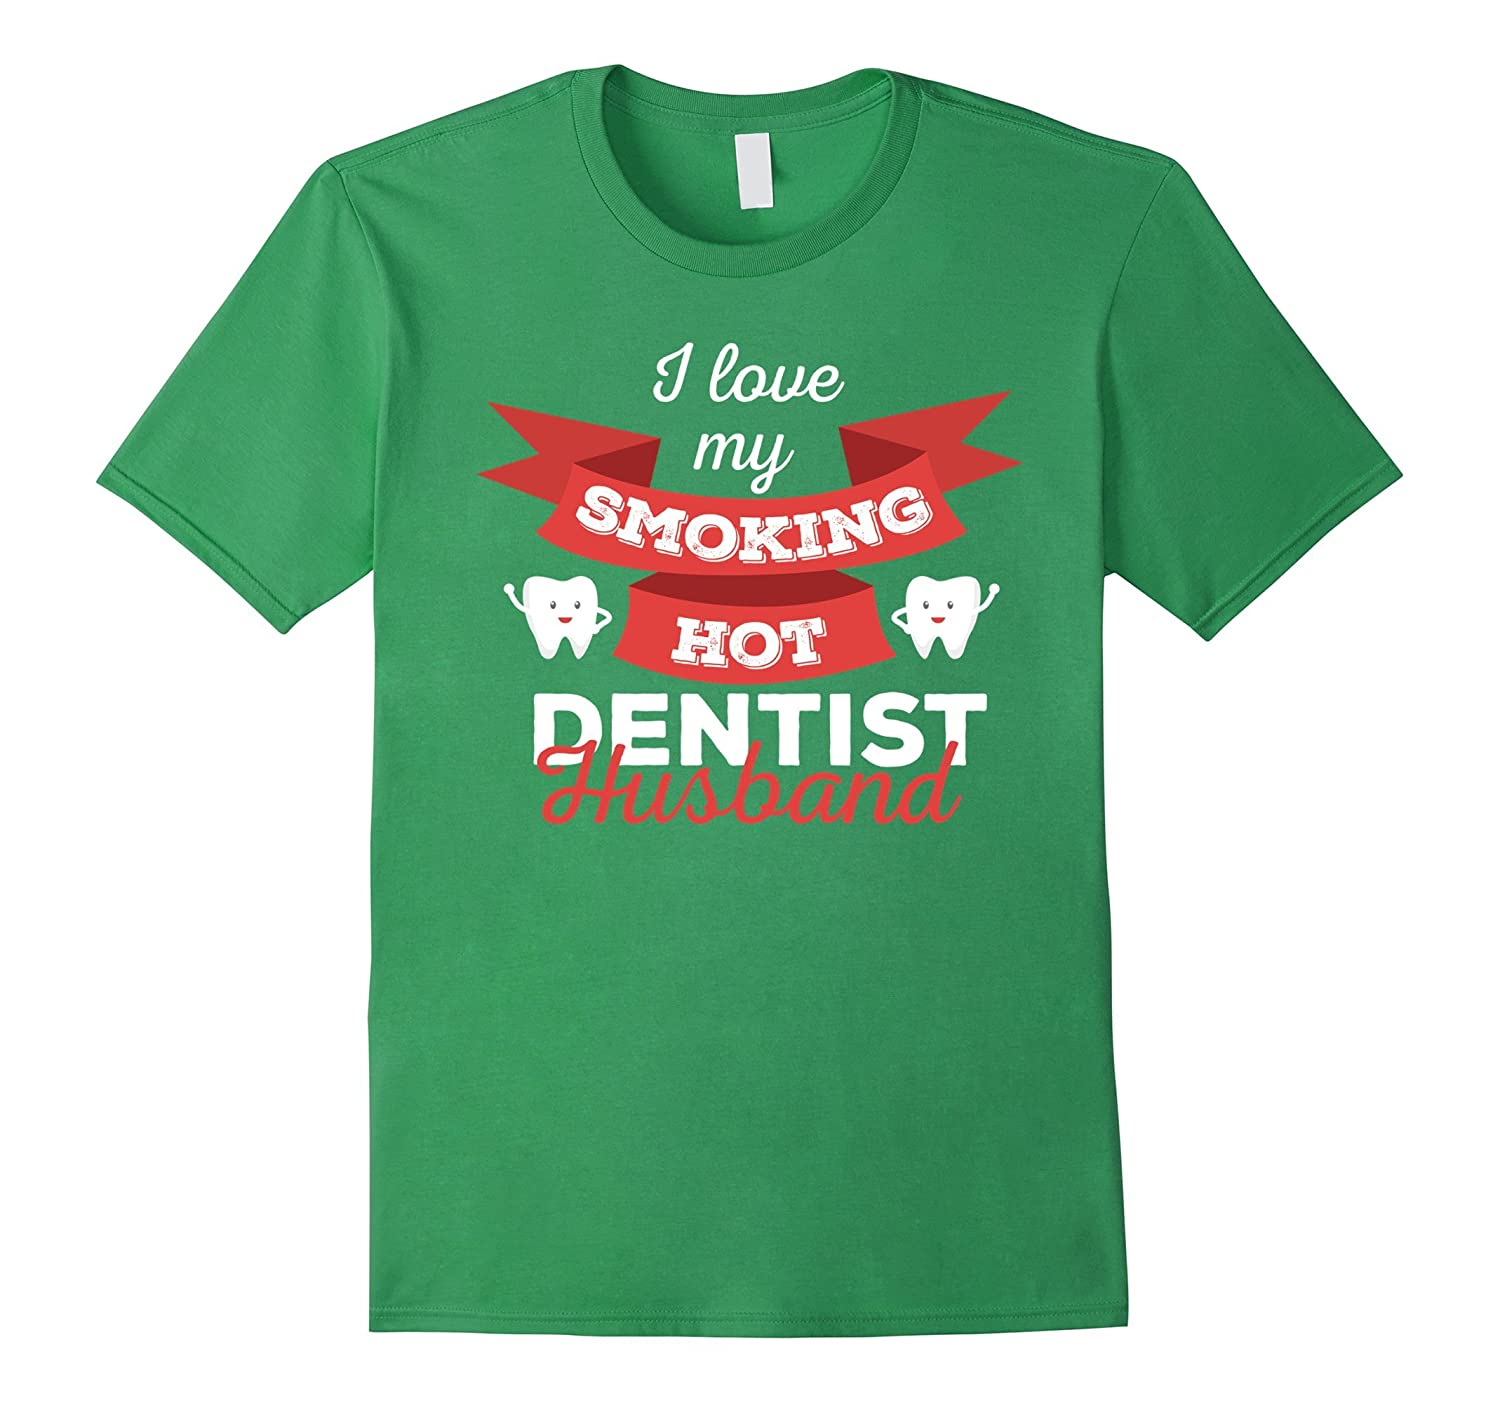 Dentist T-shirt - I love my smoking hot Dentist husband-TD